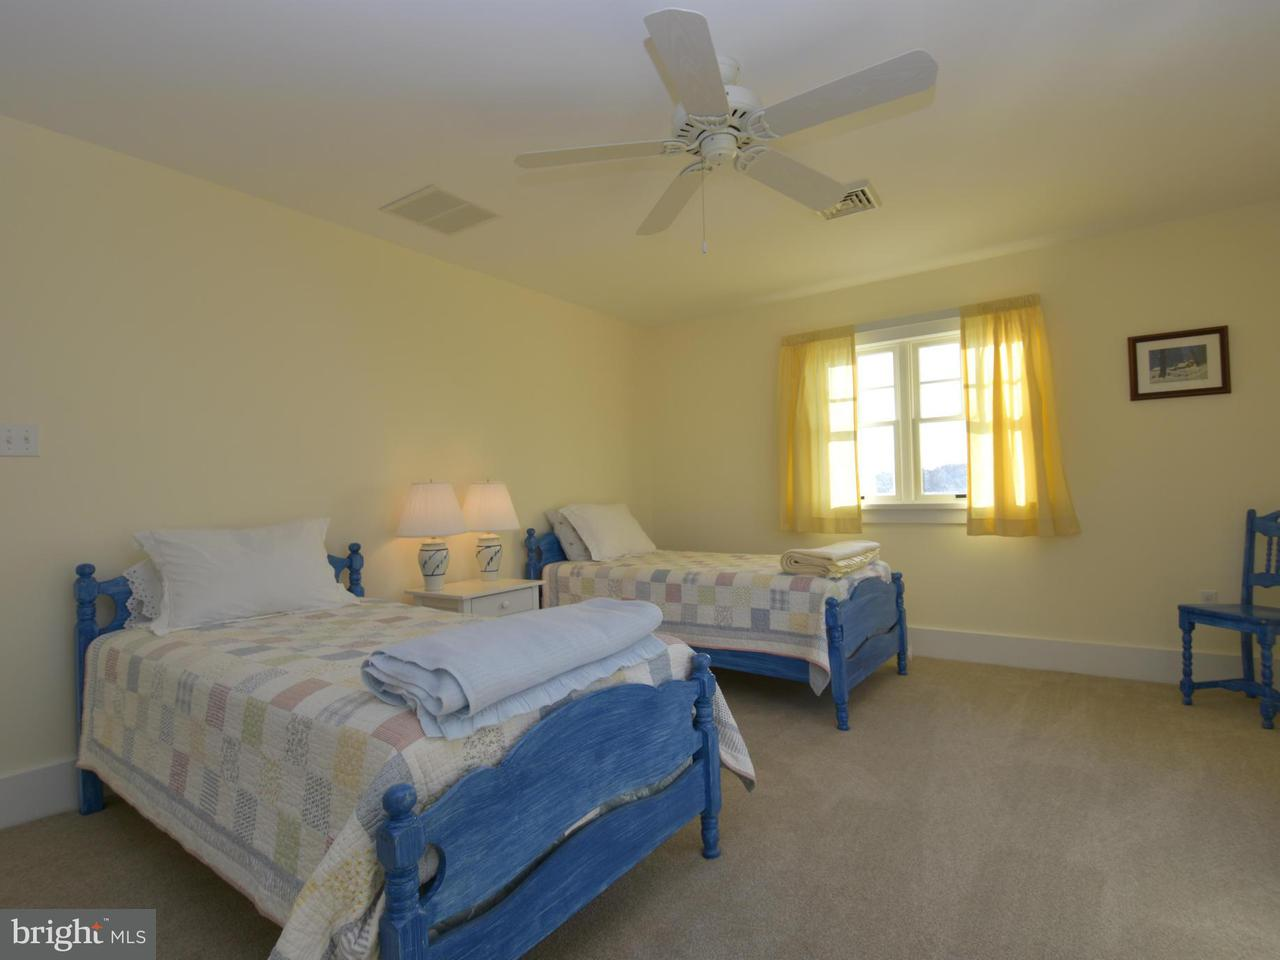 Additional photo for property listing at 22610 Anna May Drive 22610 Anna May Drive Wittman, 메릴랜드 21676 미국